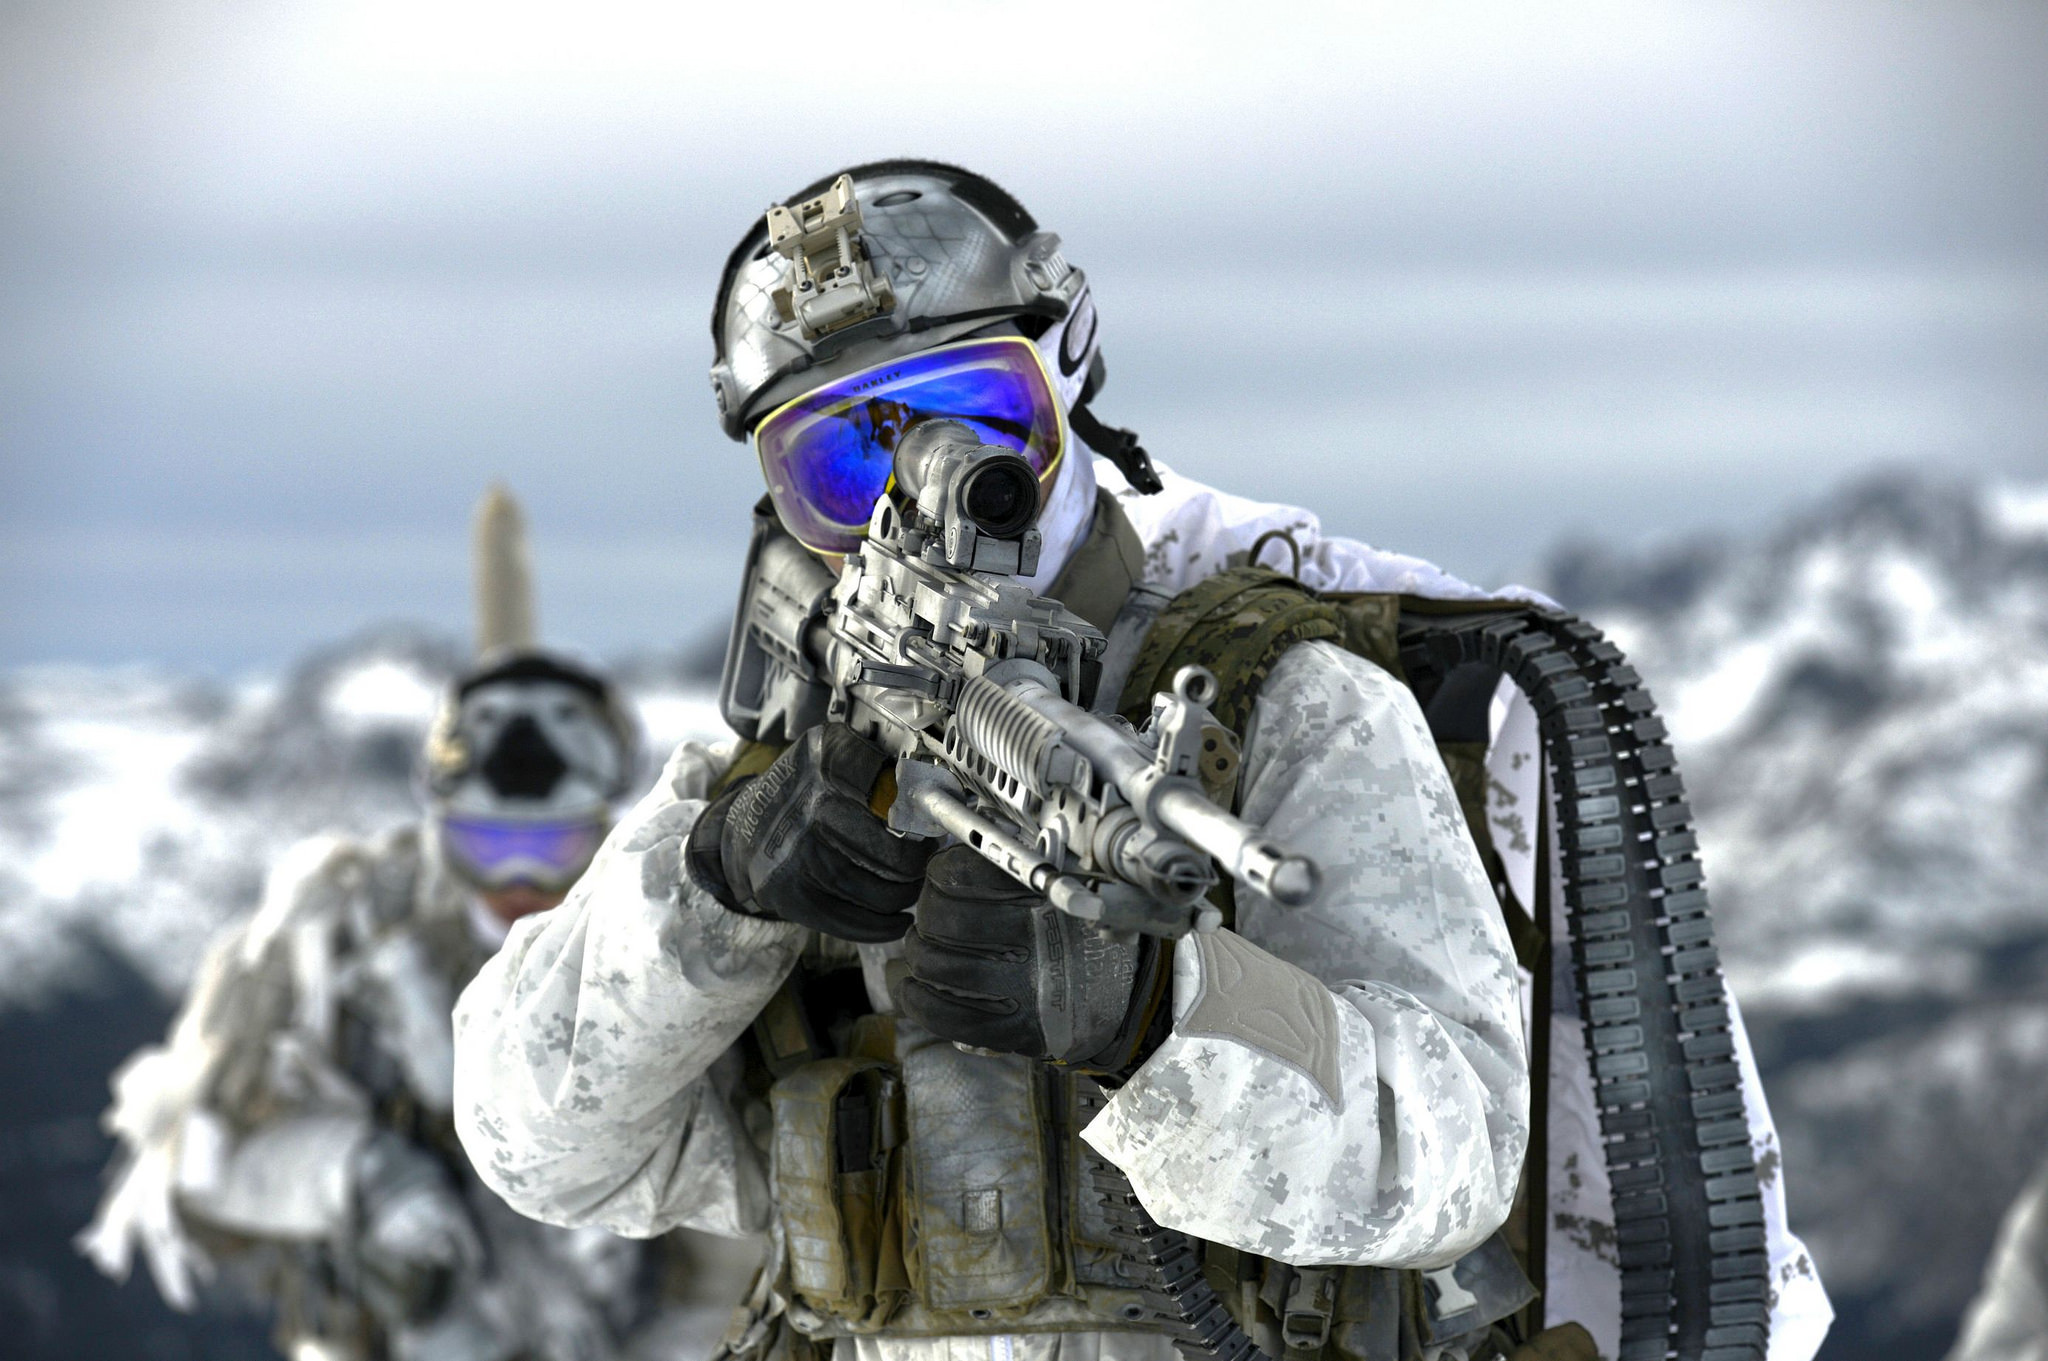 Wallpaper united states navy seals, soldiers, weapons wallpapers men .